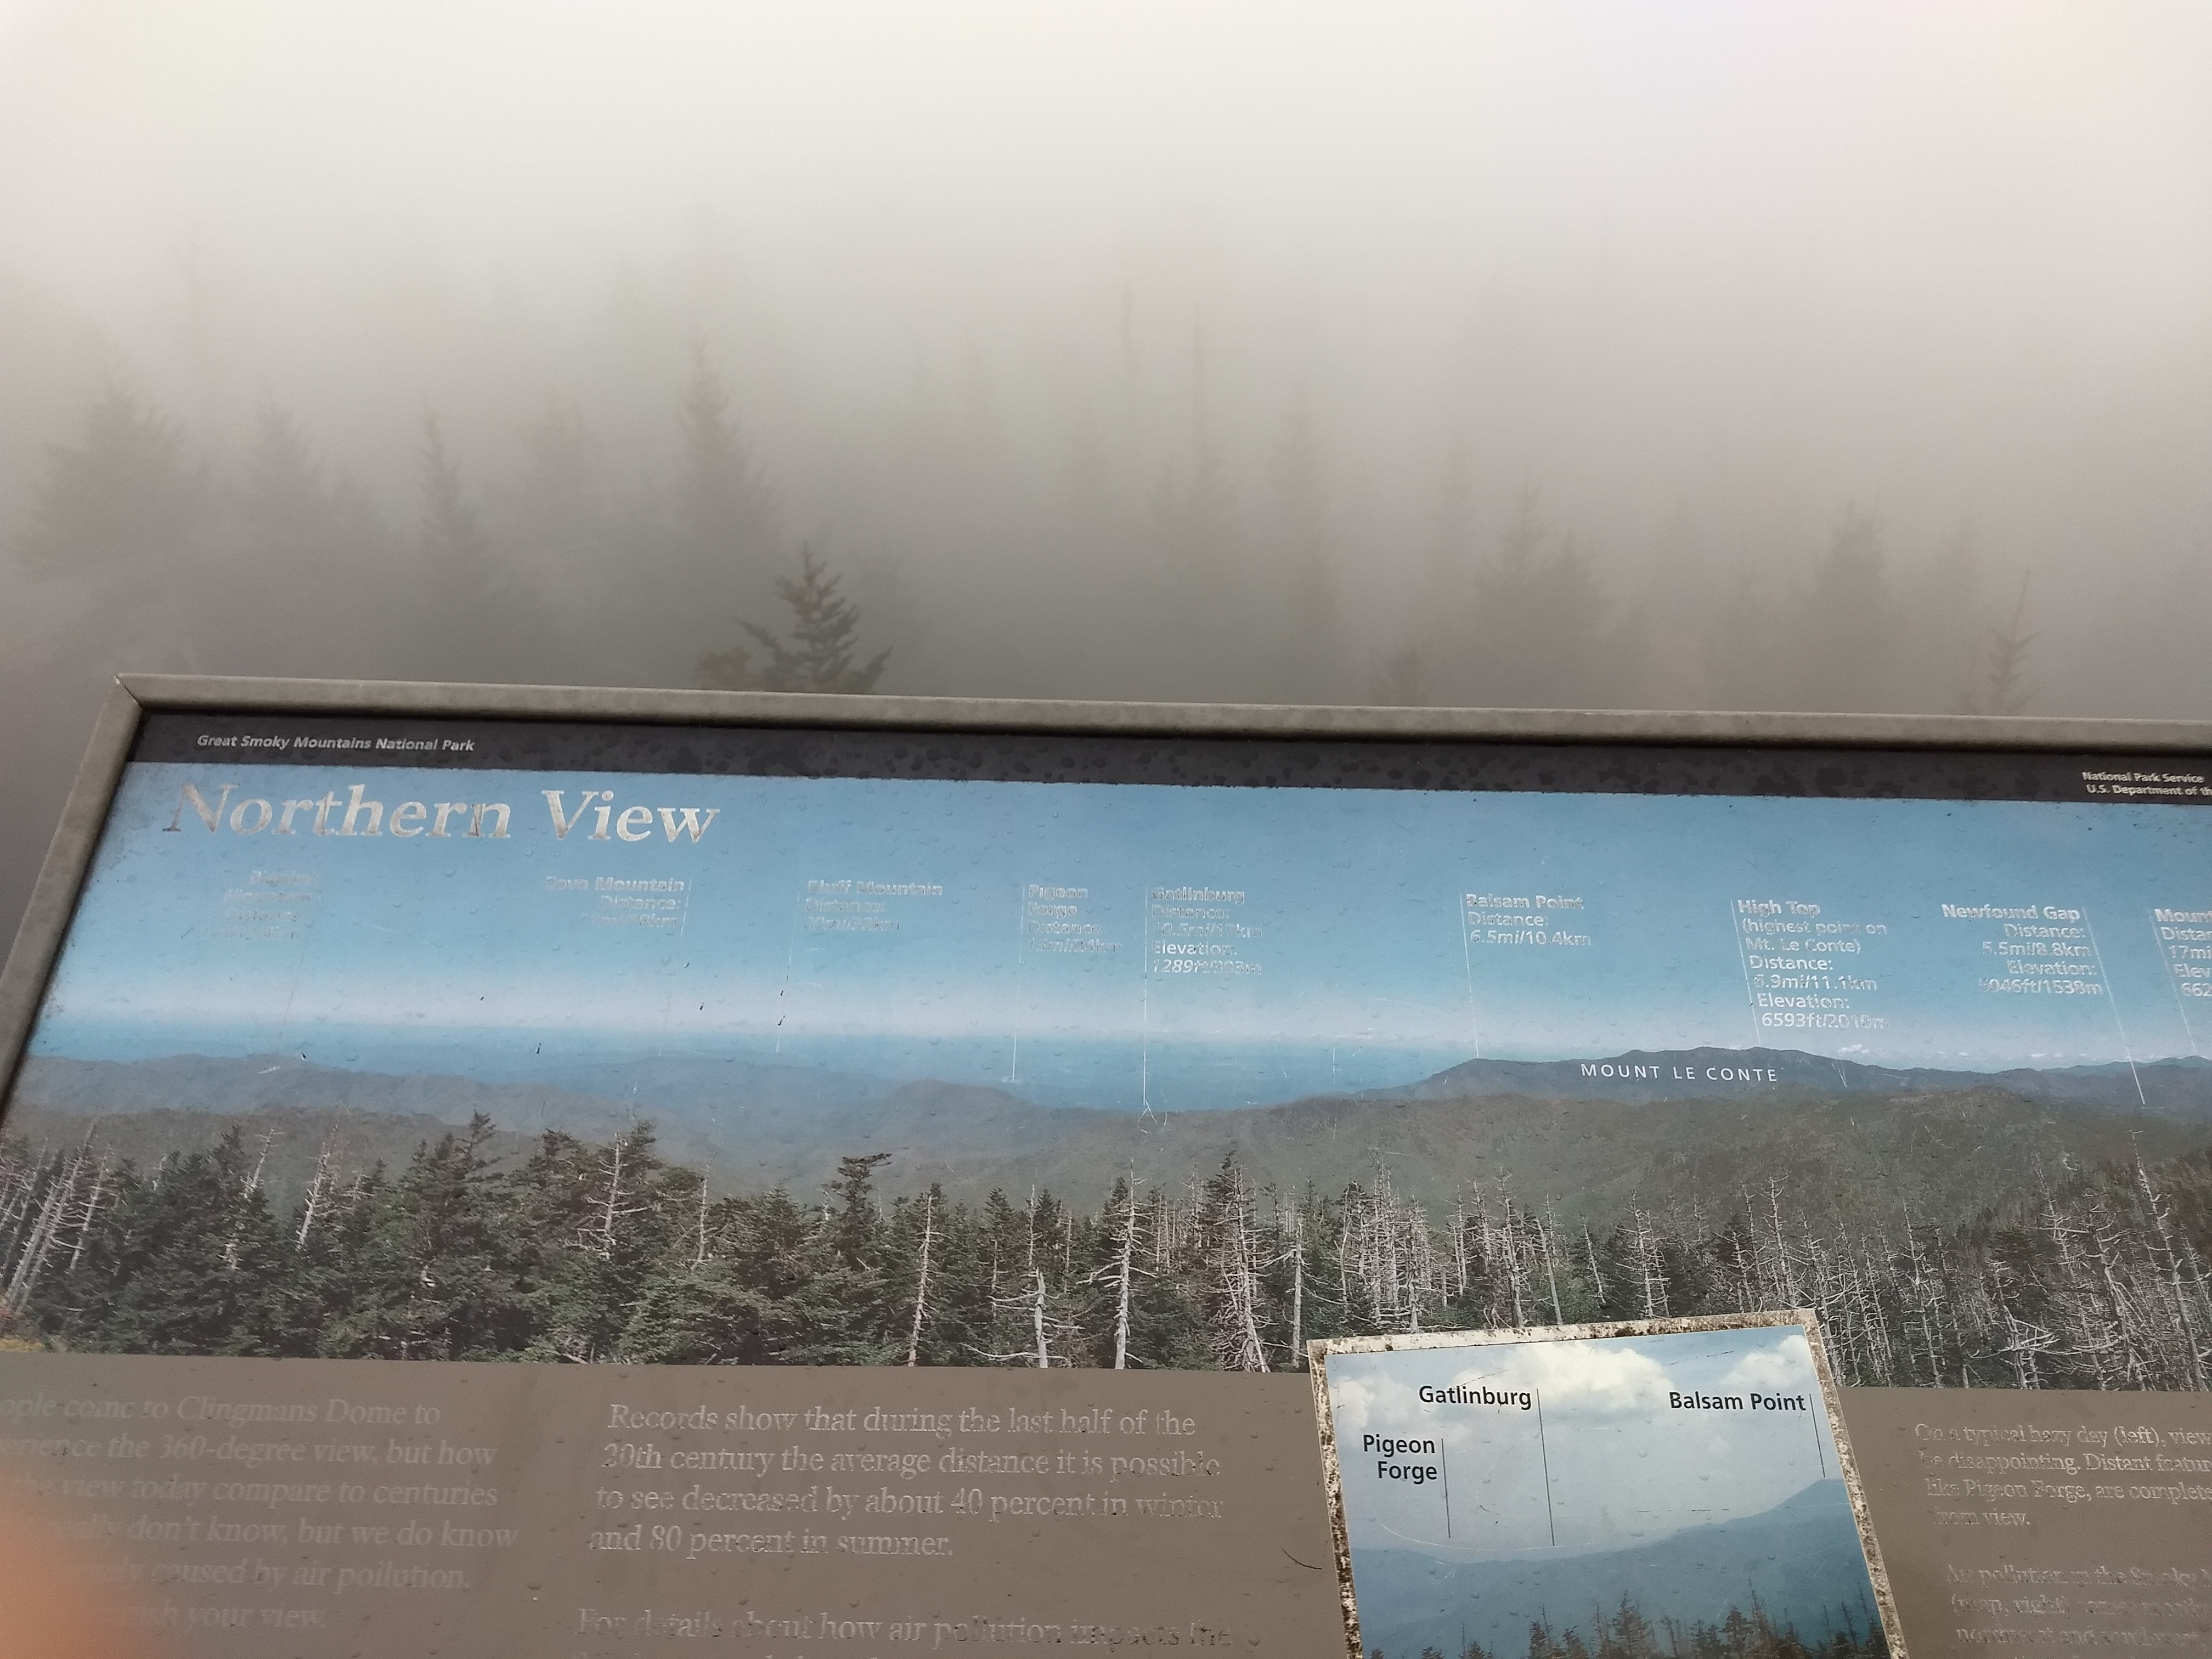 Foggy view from Clingman's dome